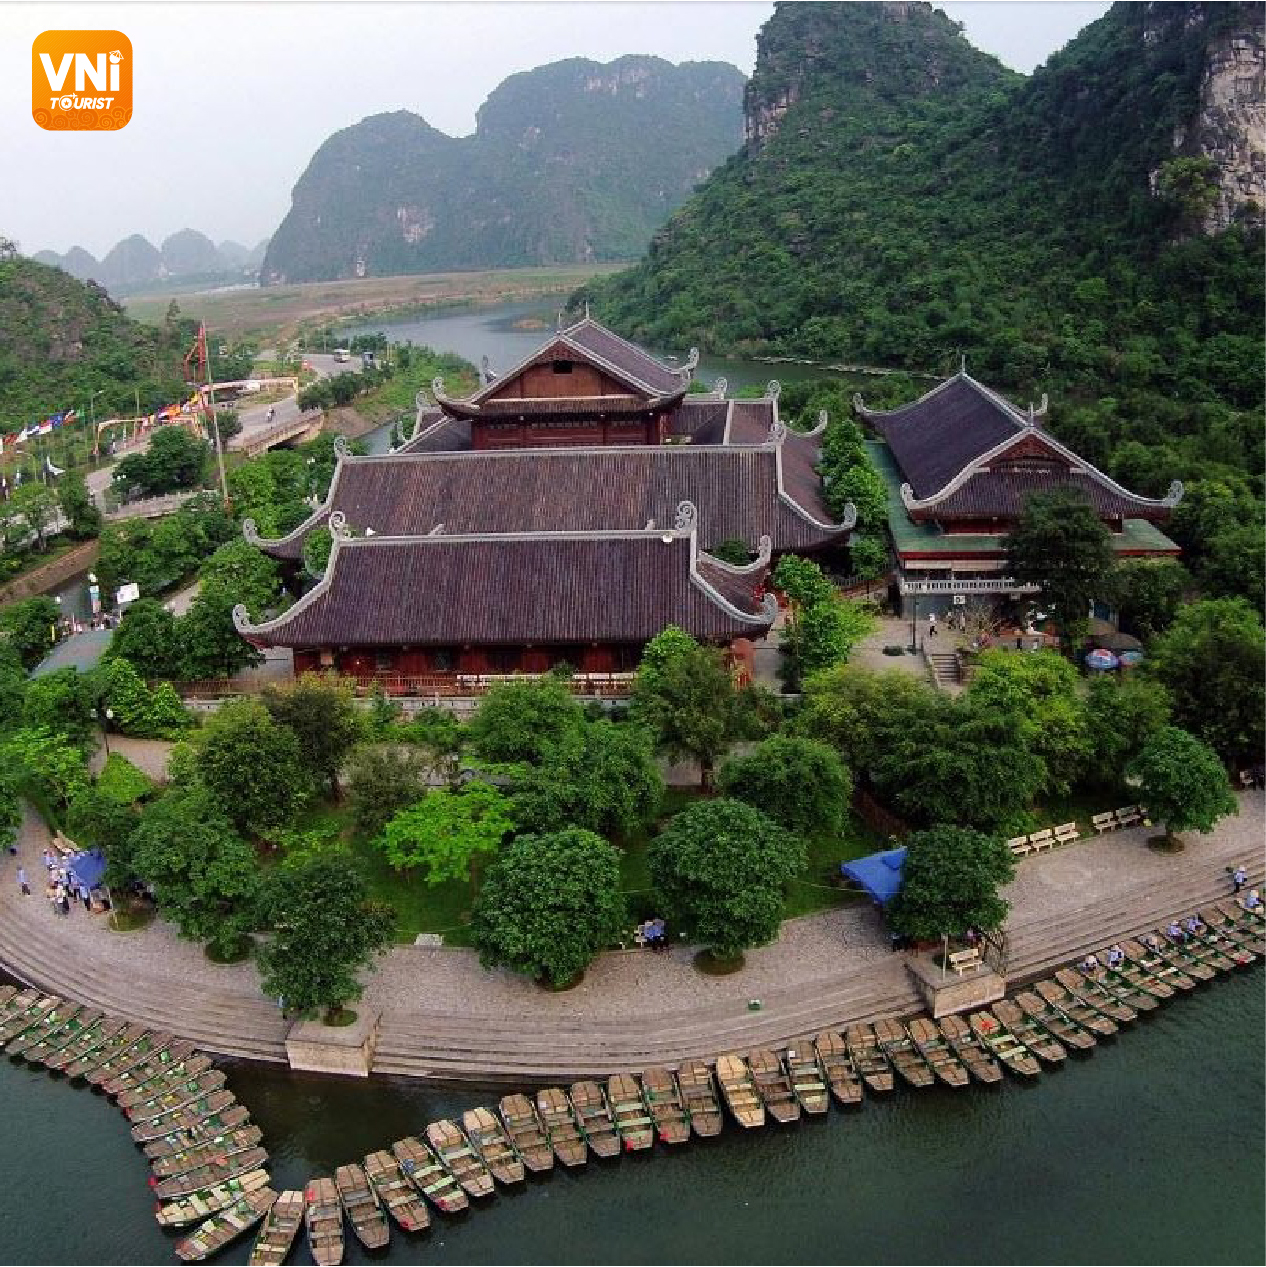 A-FULL-LIST-OF-UNESCO-RECOGNIZED-HERITAGES-IN-VIETNAM-17